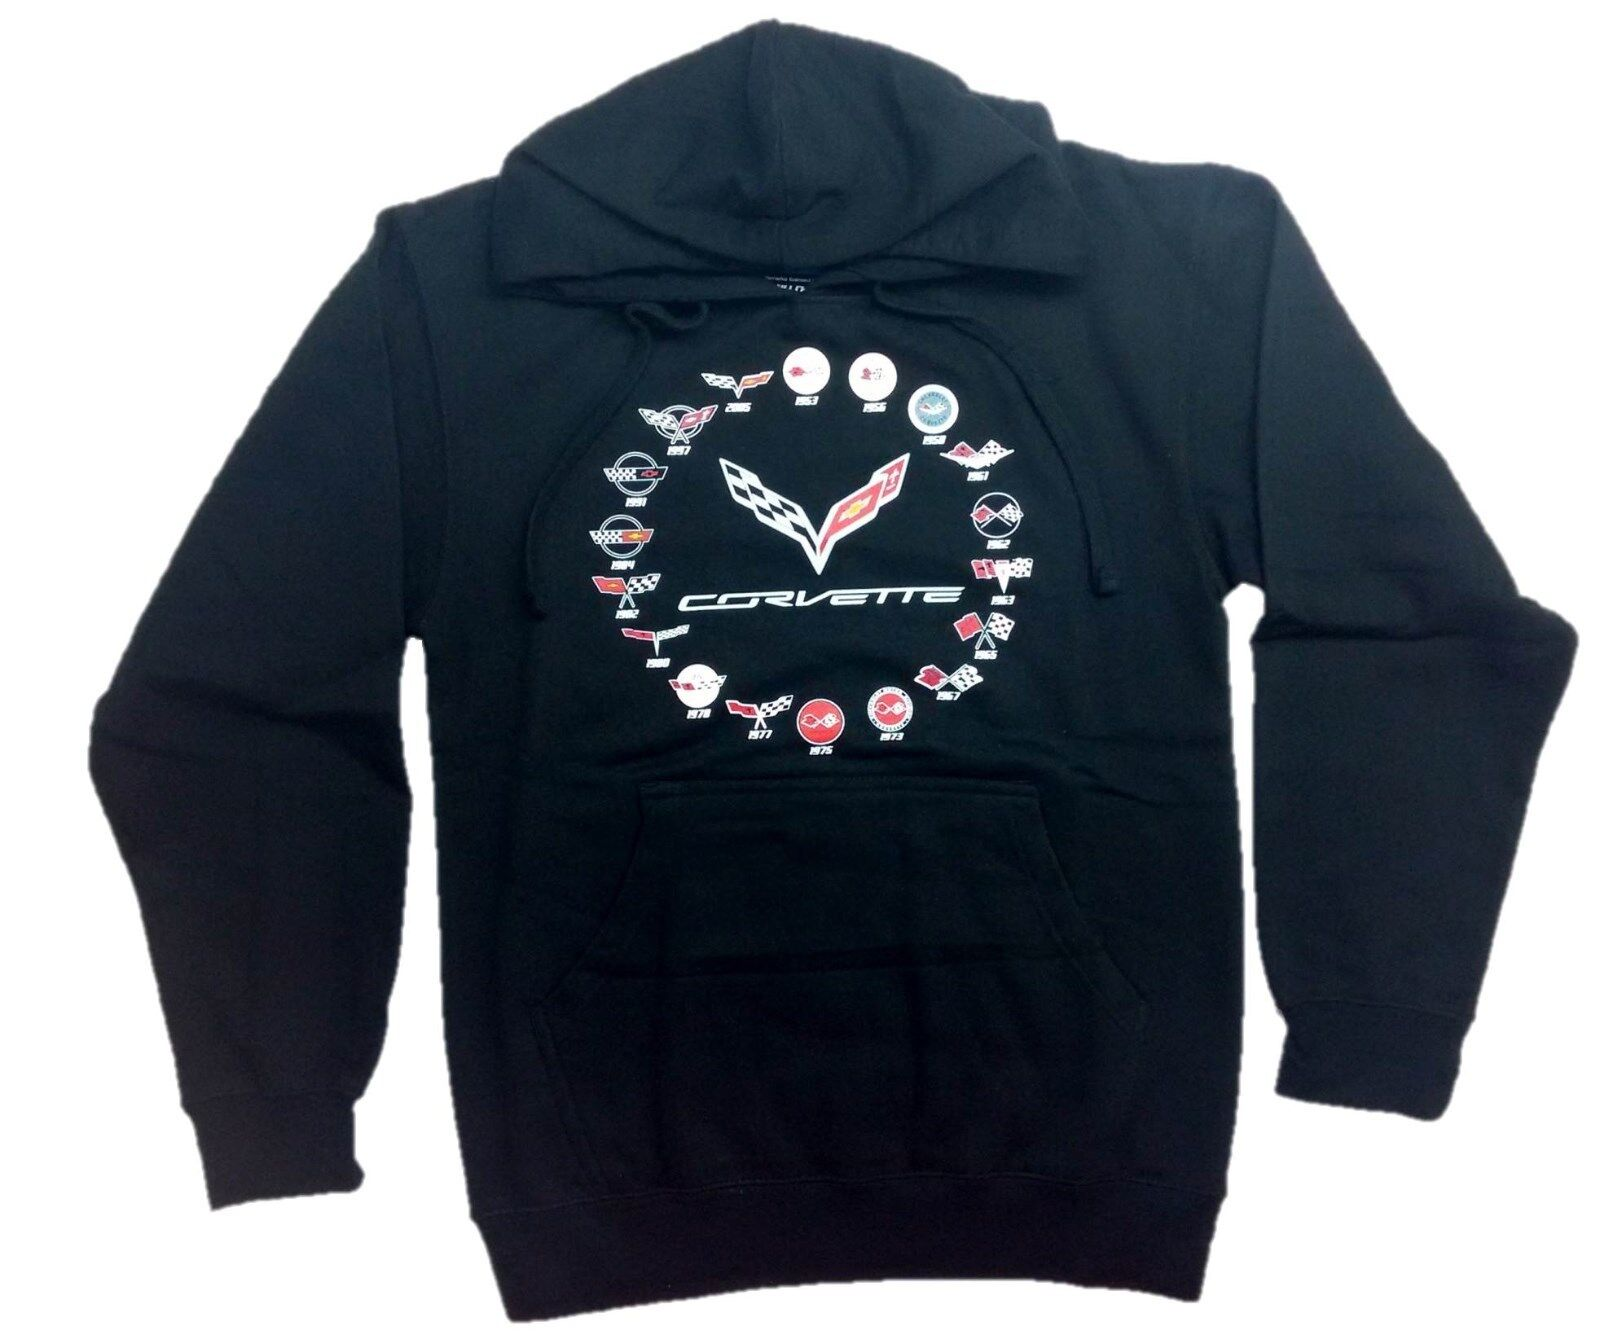 Corvette Hooded Sweatshirt w/ Screen Printed Logos by JH Design